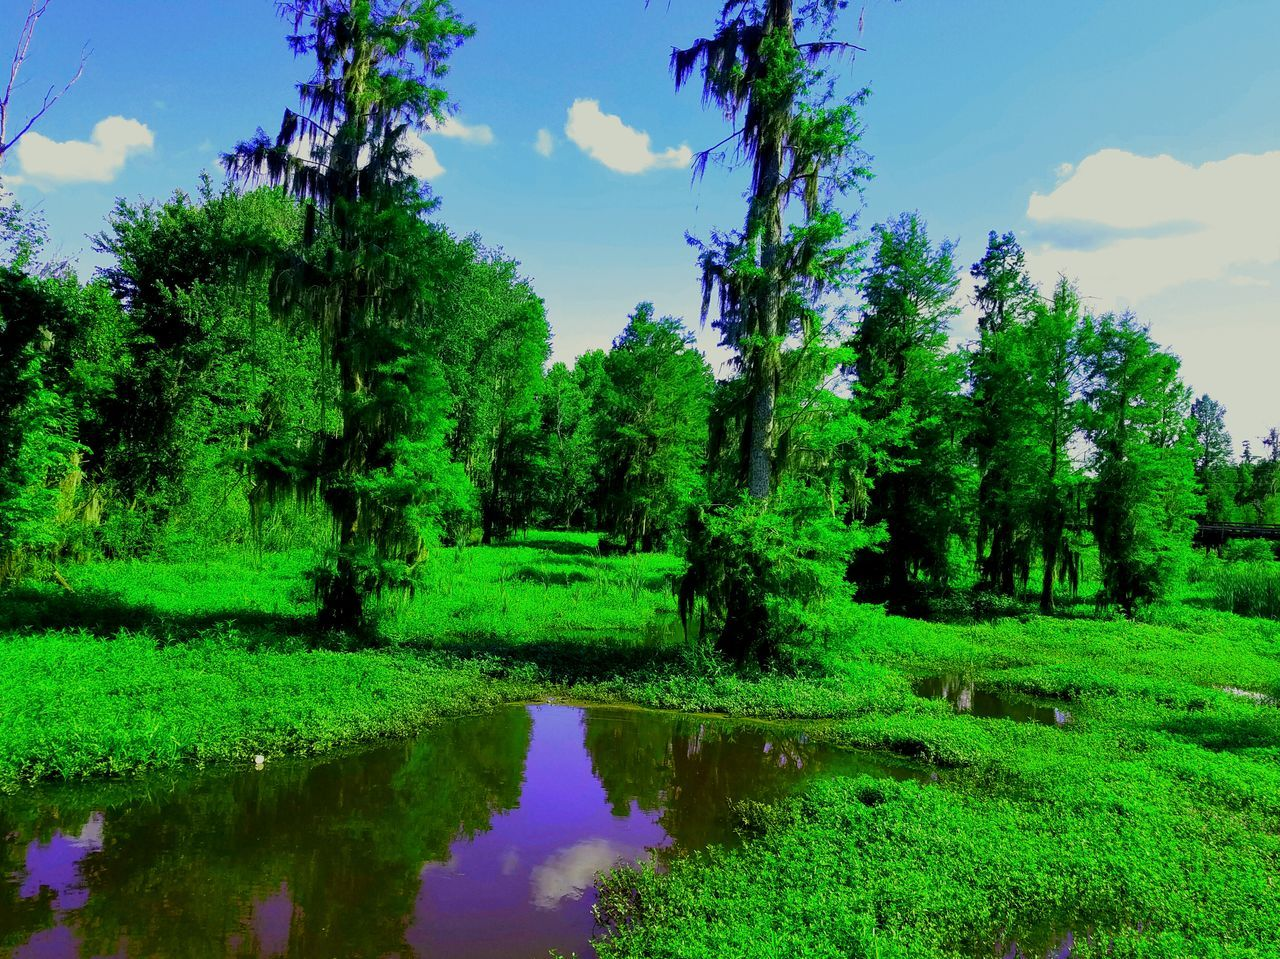 Phinizy beauty Filtered Swamp Nature Trees And Sky Trees Mystic Relax Tranquil